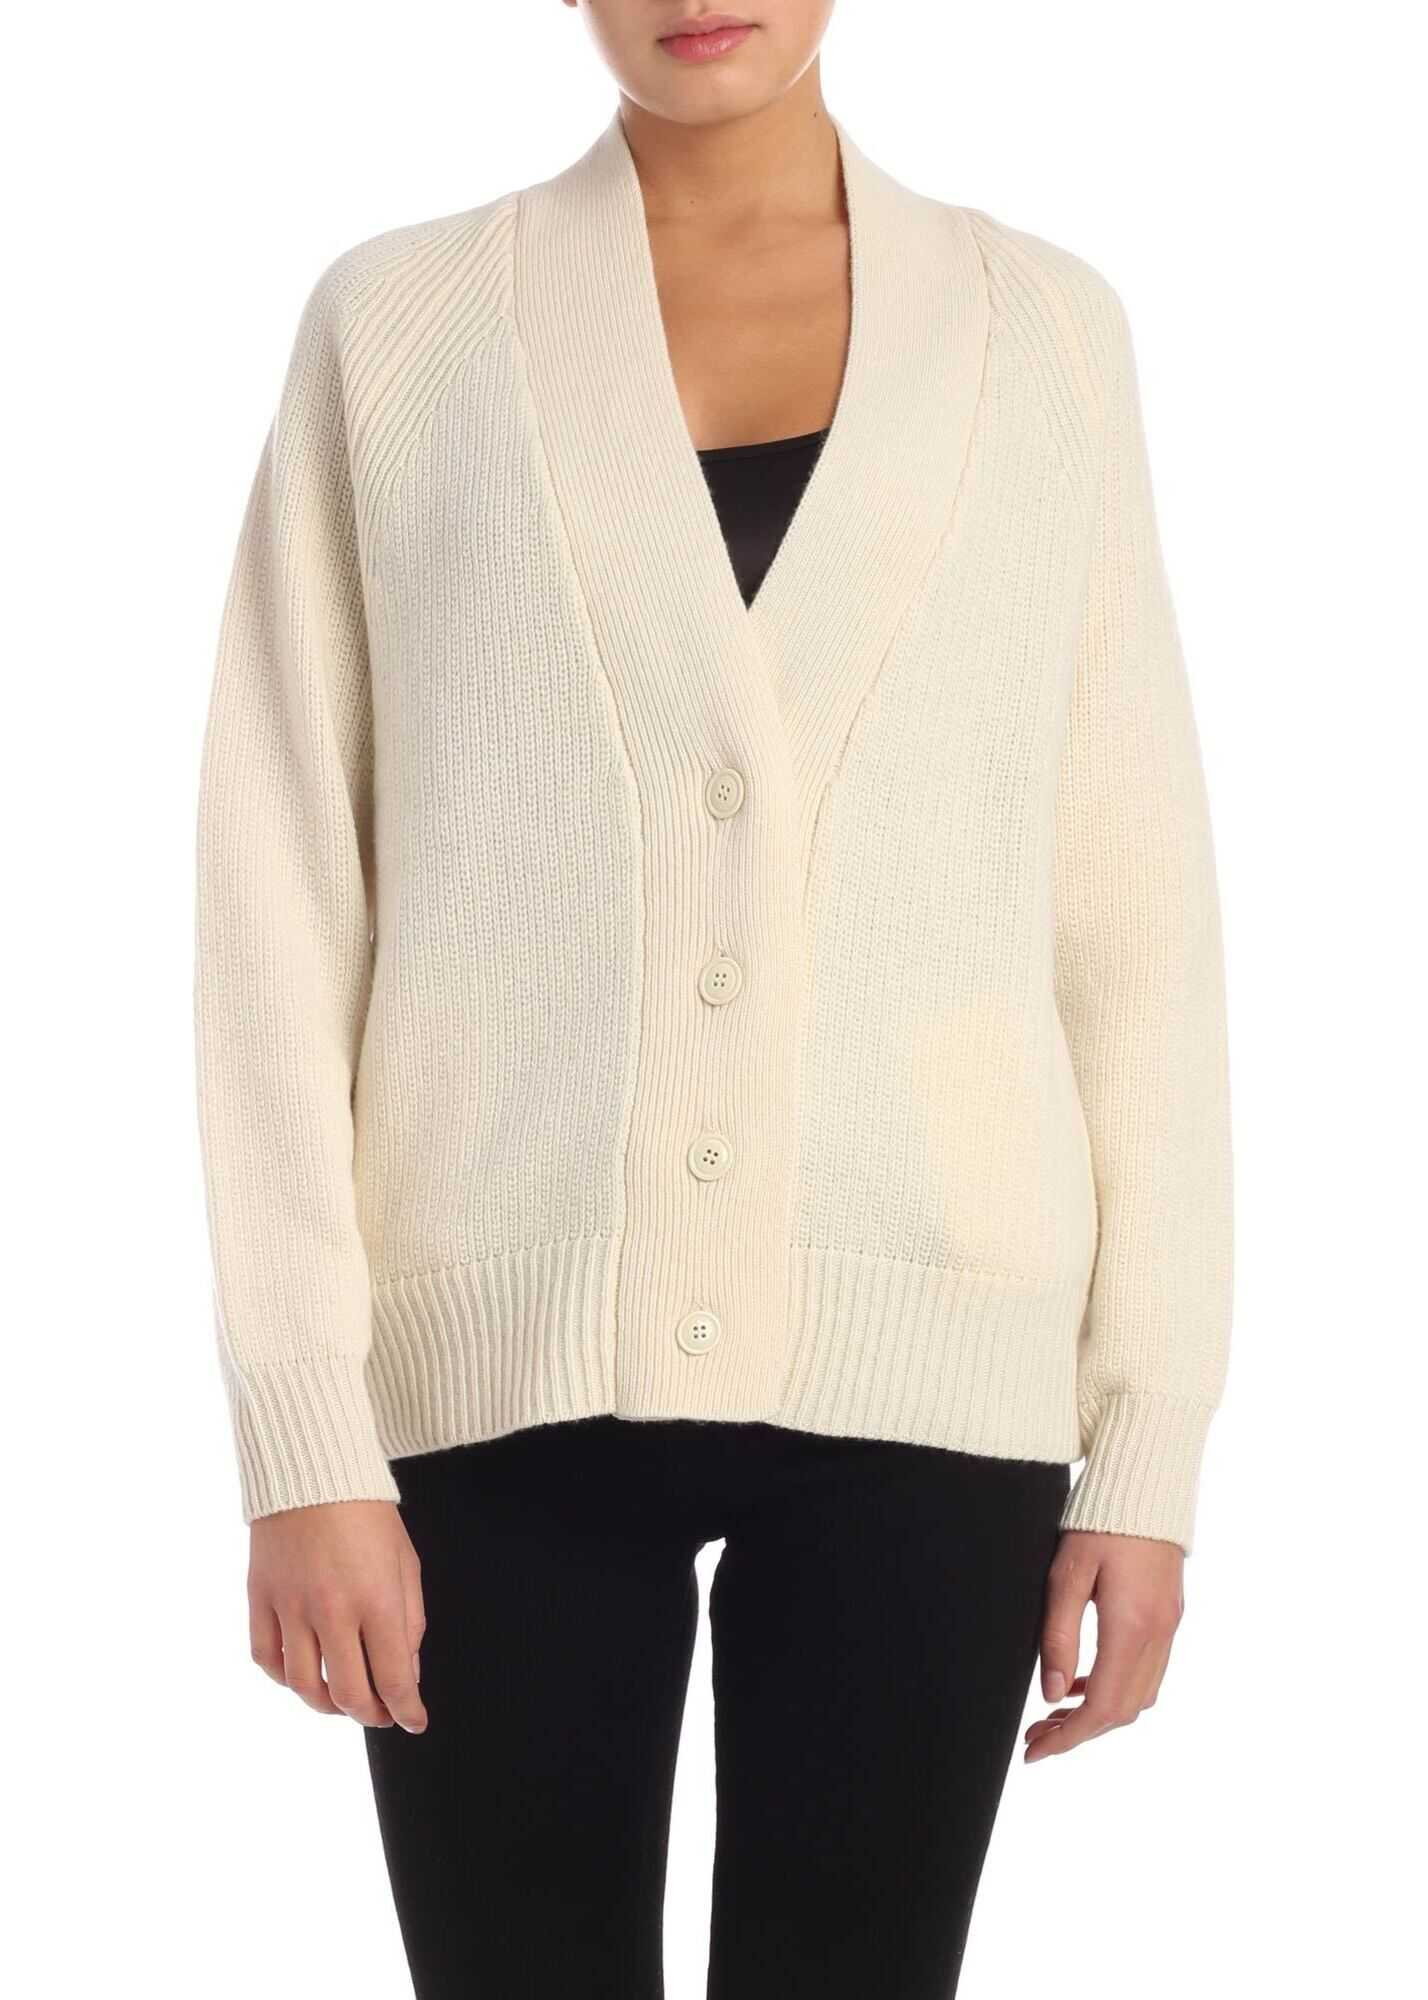 Cardigan In Ivory Color With Tone-On-Tone Buttons thumbnail